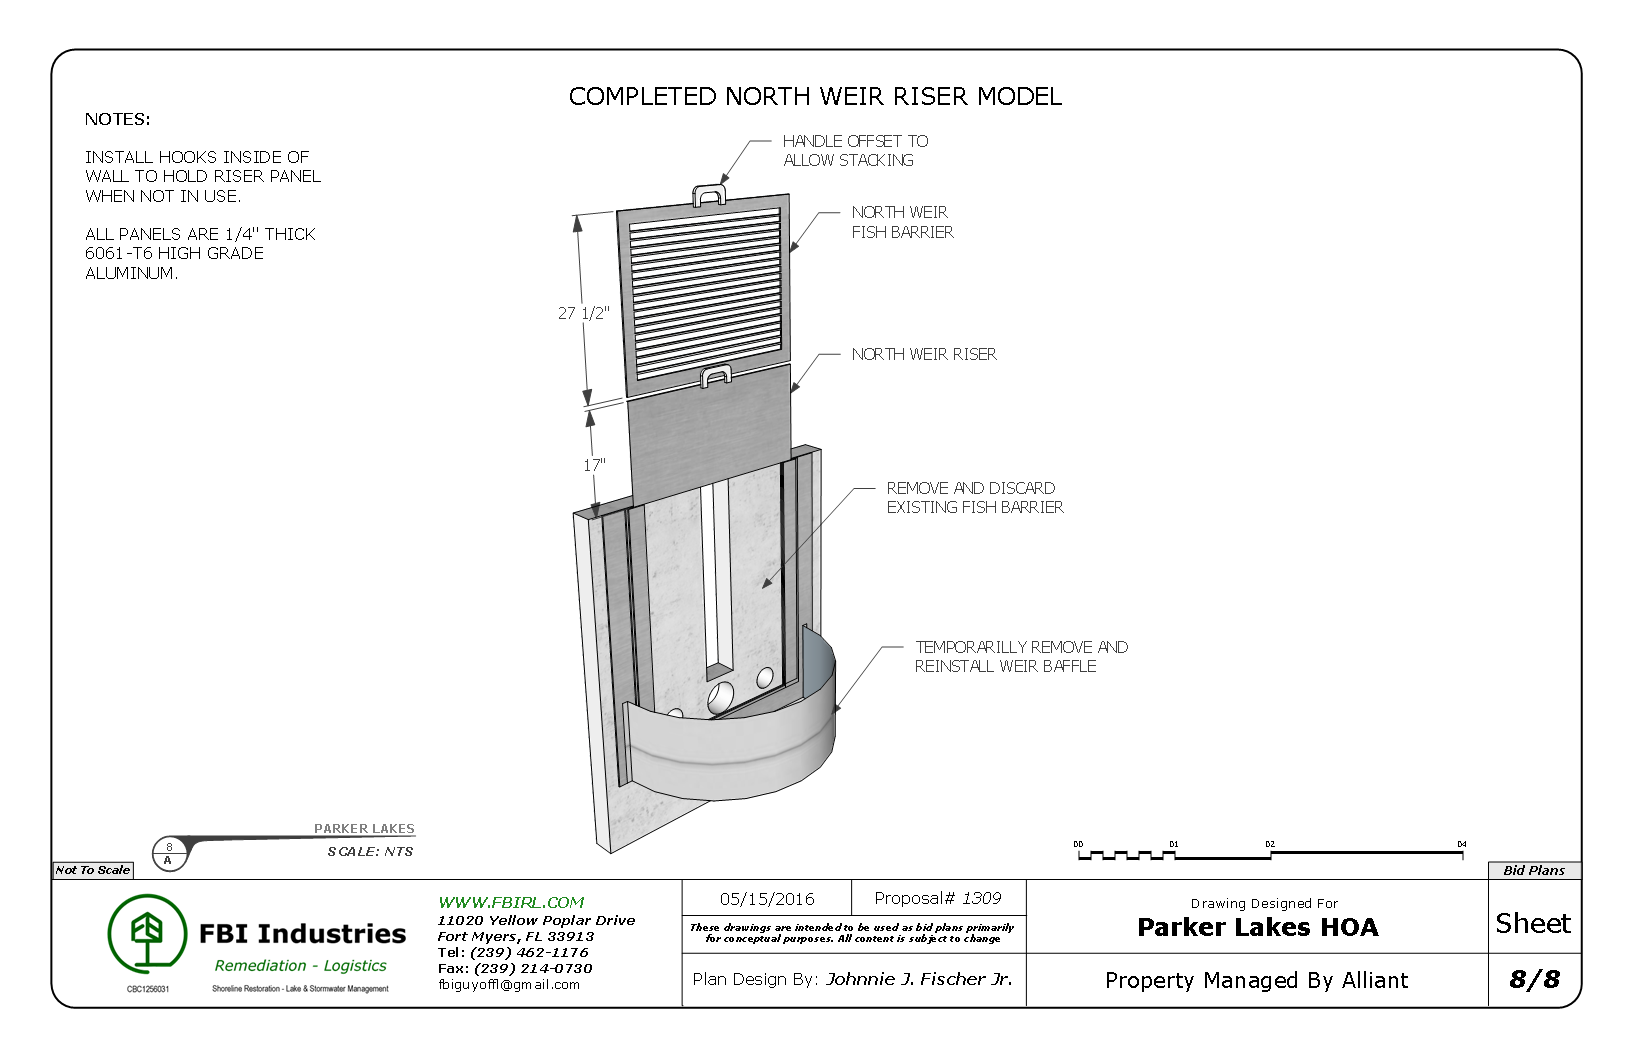 Proposal#1309_Parker Lakes Weir Presentation_Photos_8.png